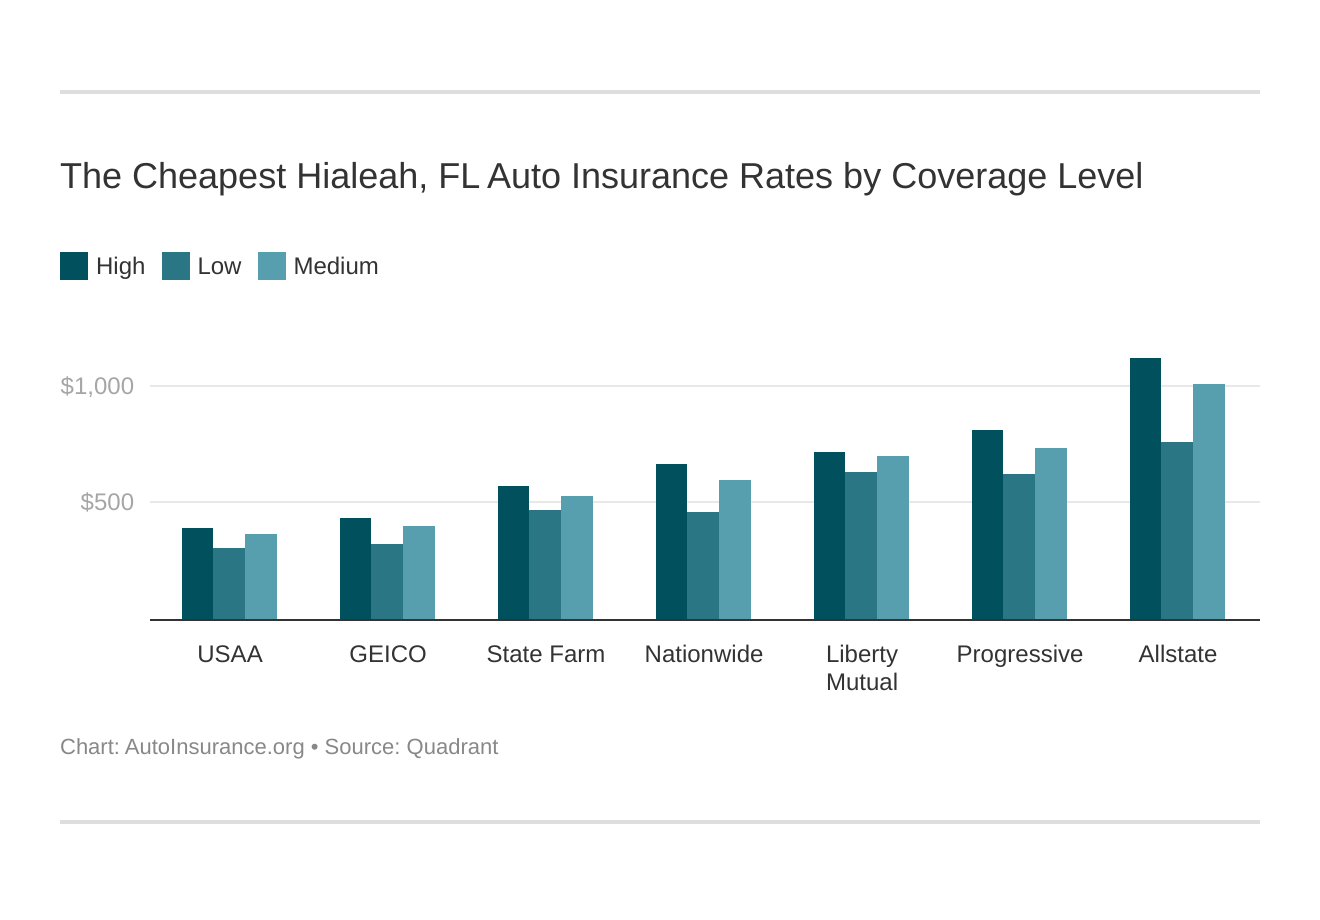 The Cheapest Hialeah, FL Auto Insurance Rates by Coverage Level